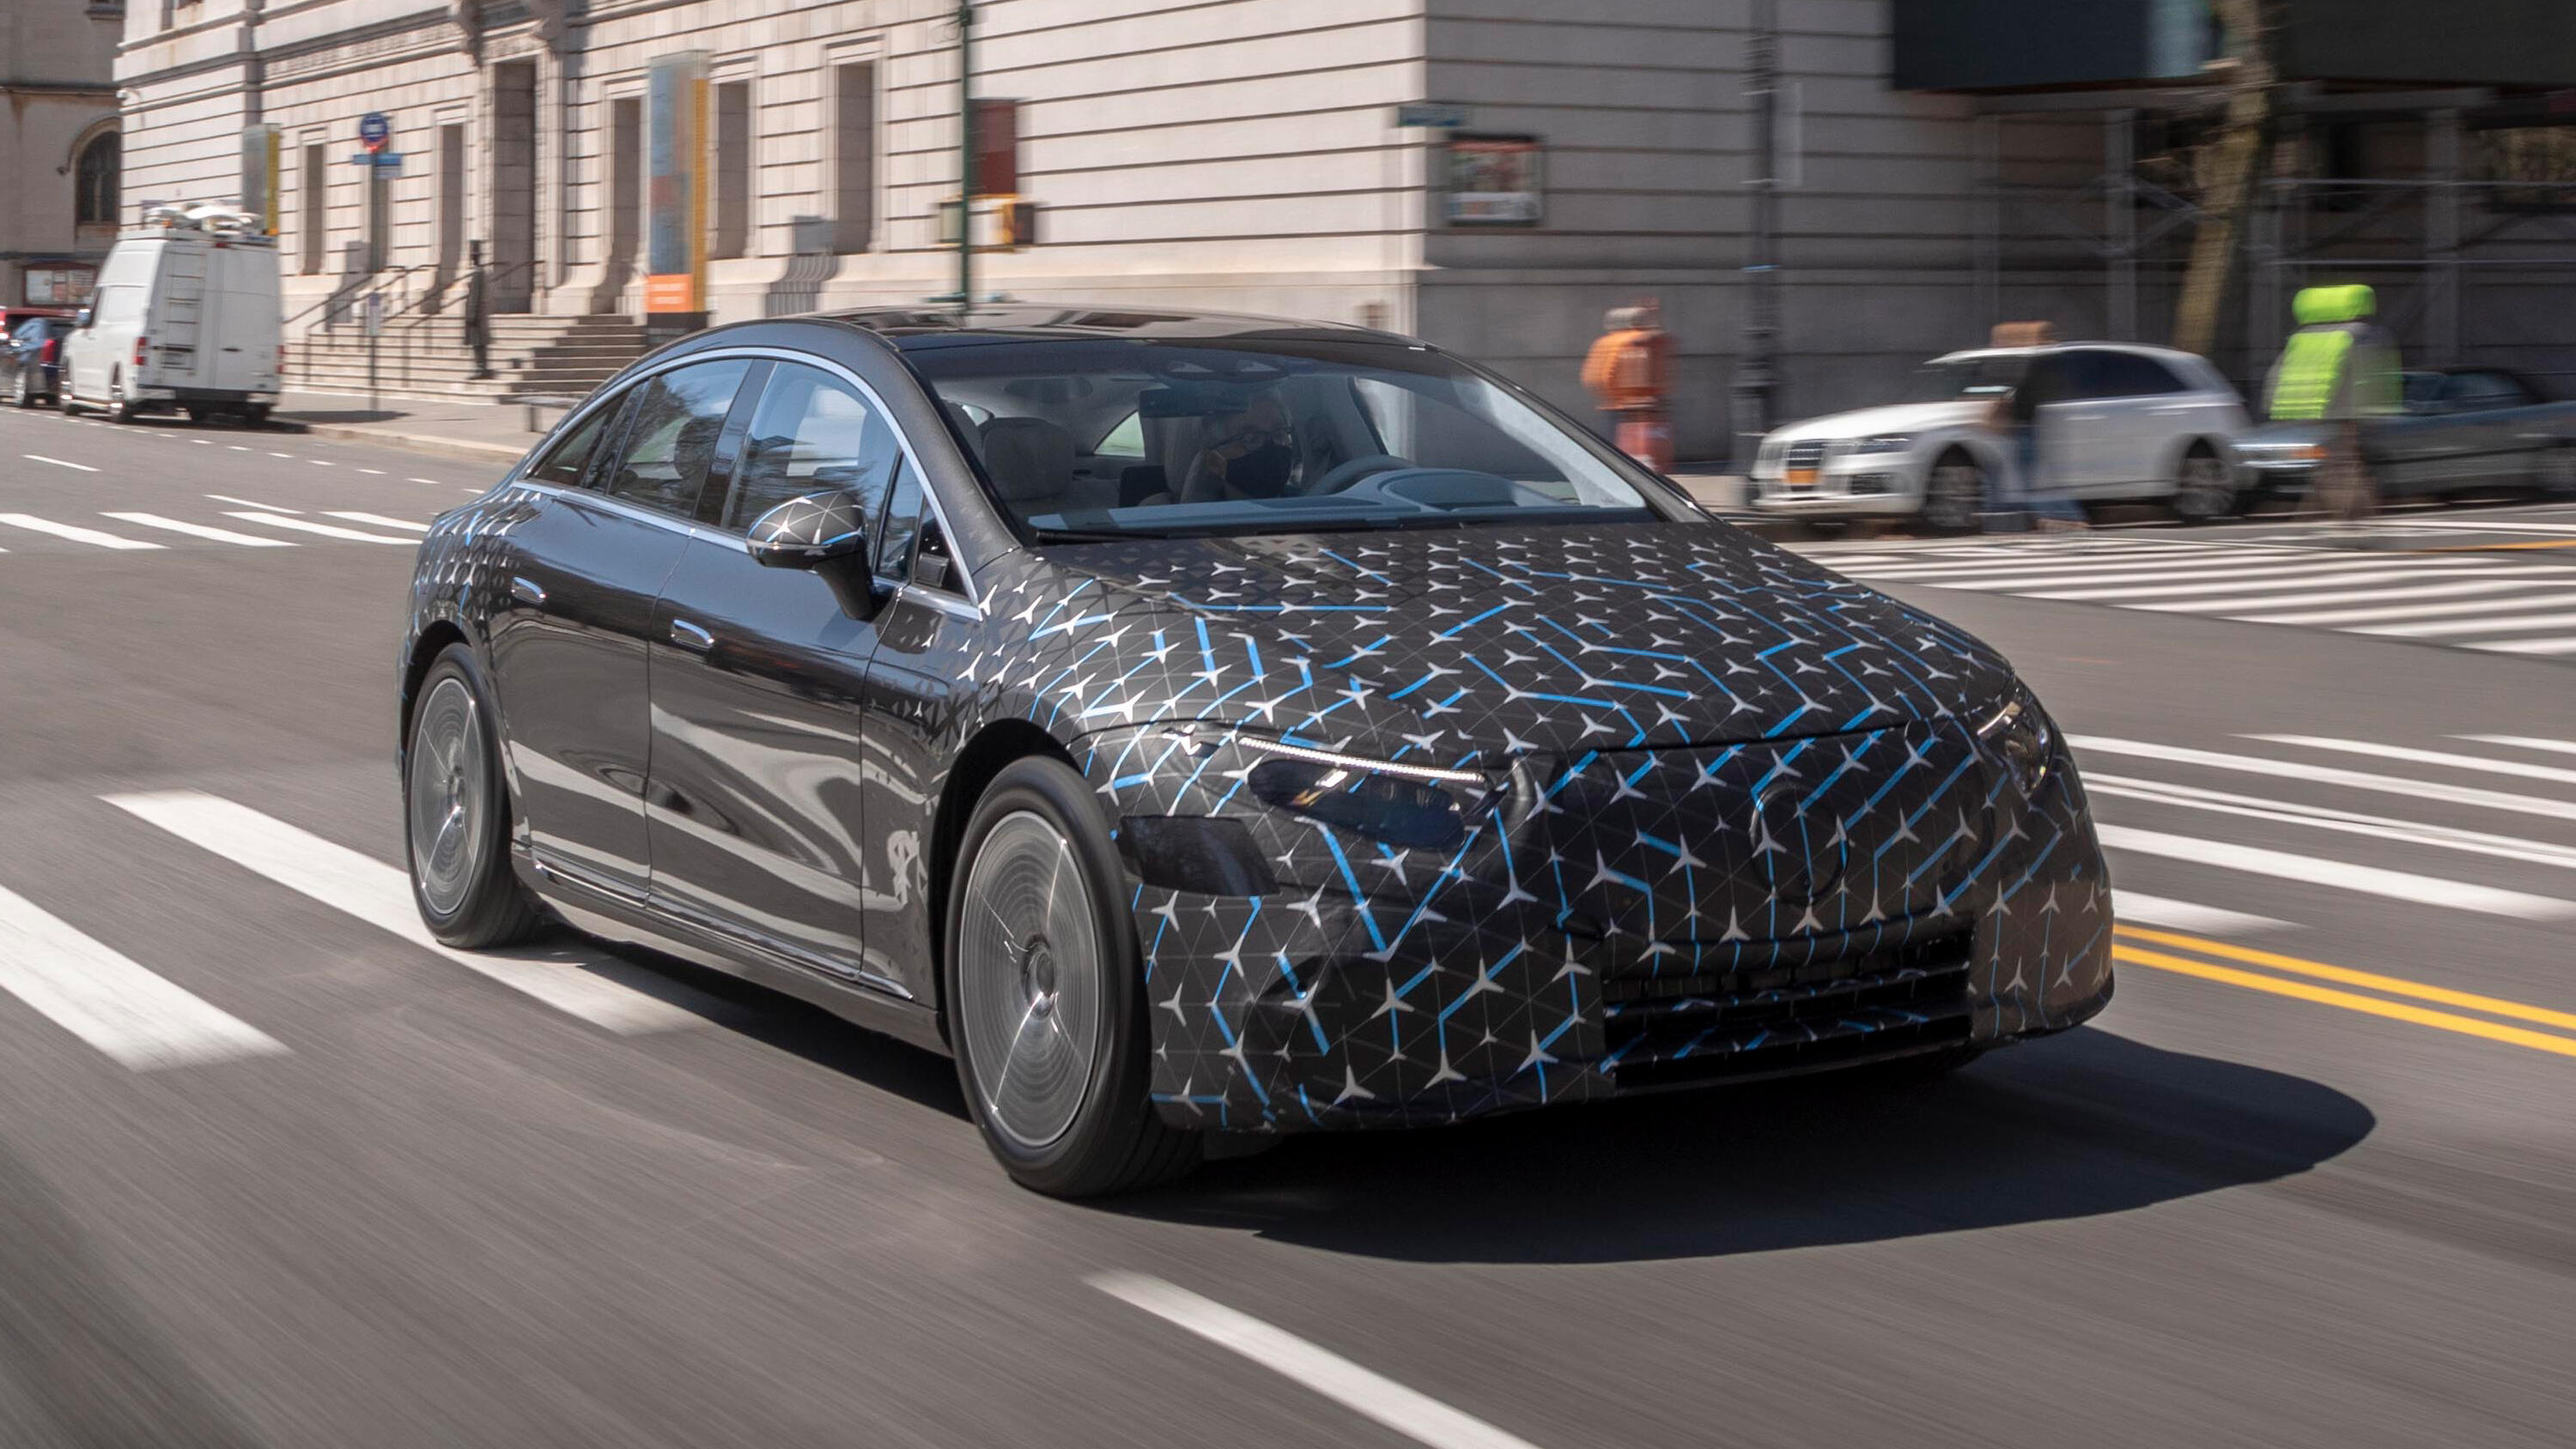 Video: 2022 Mercedes-Benz EQS: Welcoming big luxury to the EV world